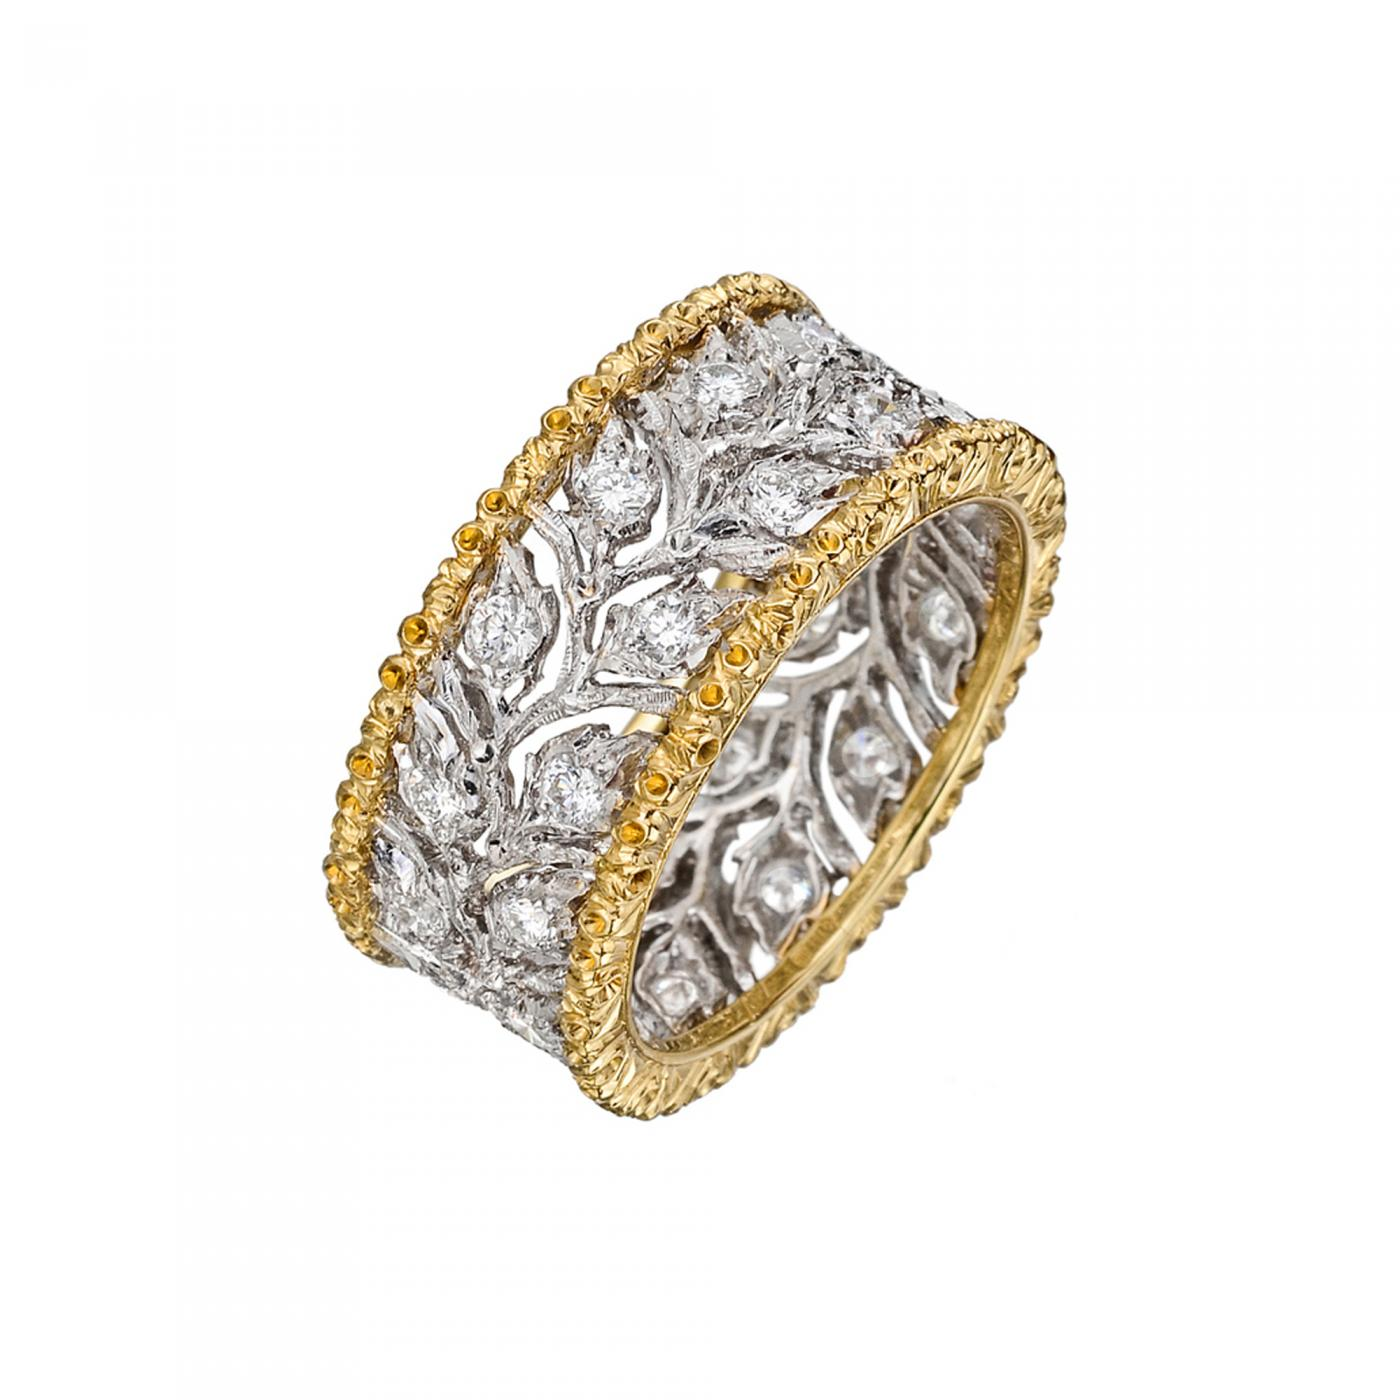 Buccellati Buccellati 18k Gold Diamond Ramage Foliate Band Ring 151107 in addition Id J 54087 furthermore Id J 1332773 additionally Wide Band Wedding Rings Sets together with Jck Las Vegas 2017 Trend No 4 Borrowed From Him Rings. on oscar heyman band rings